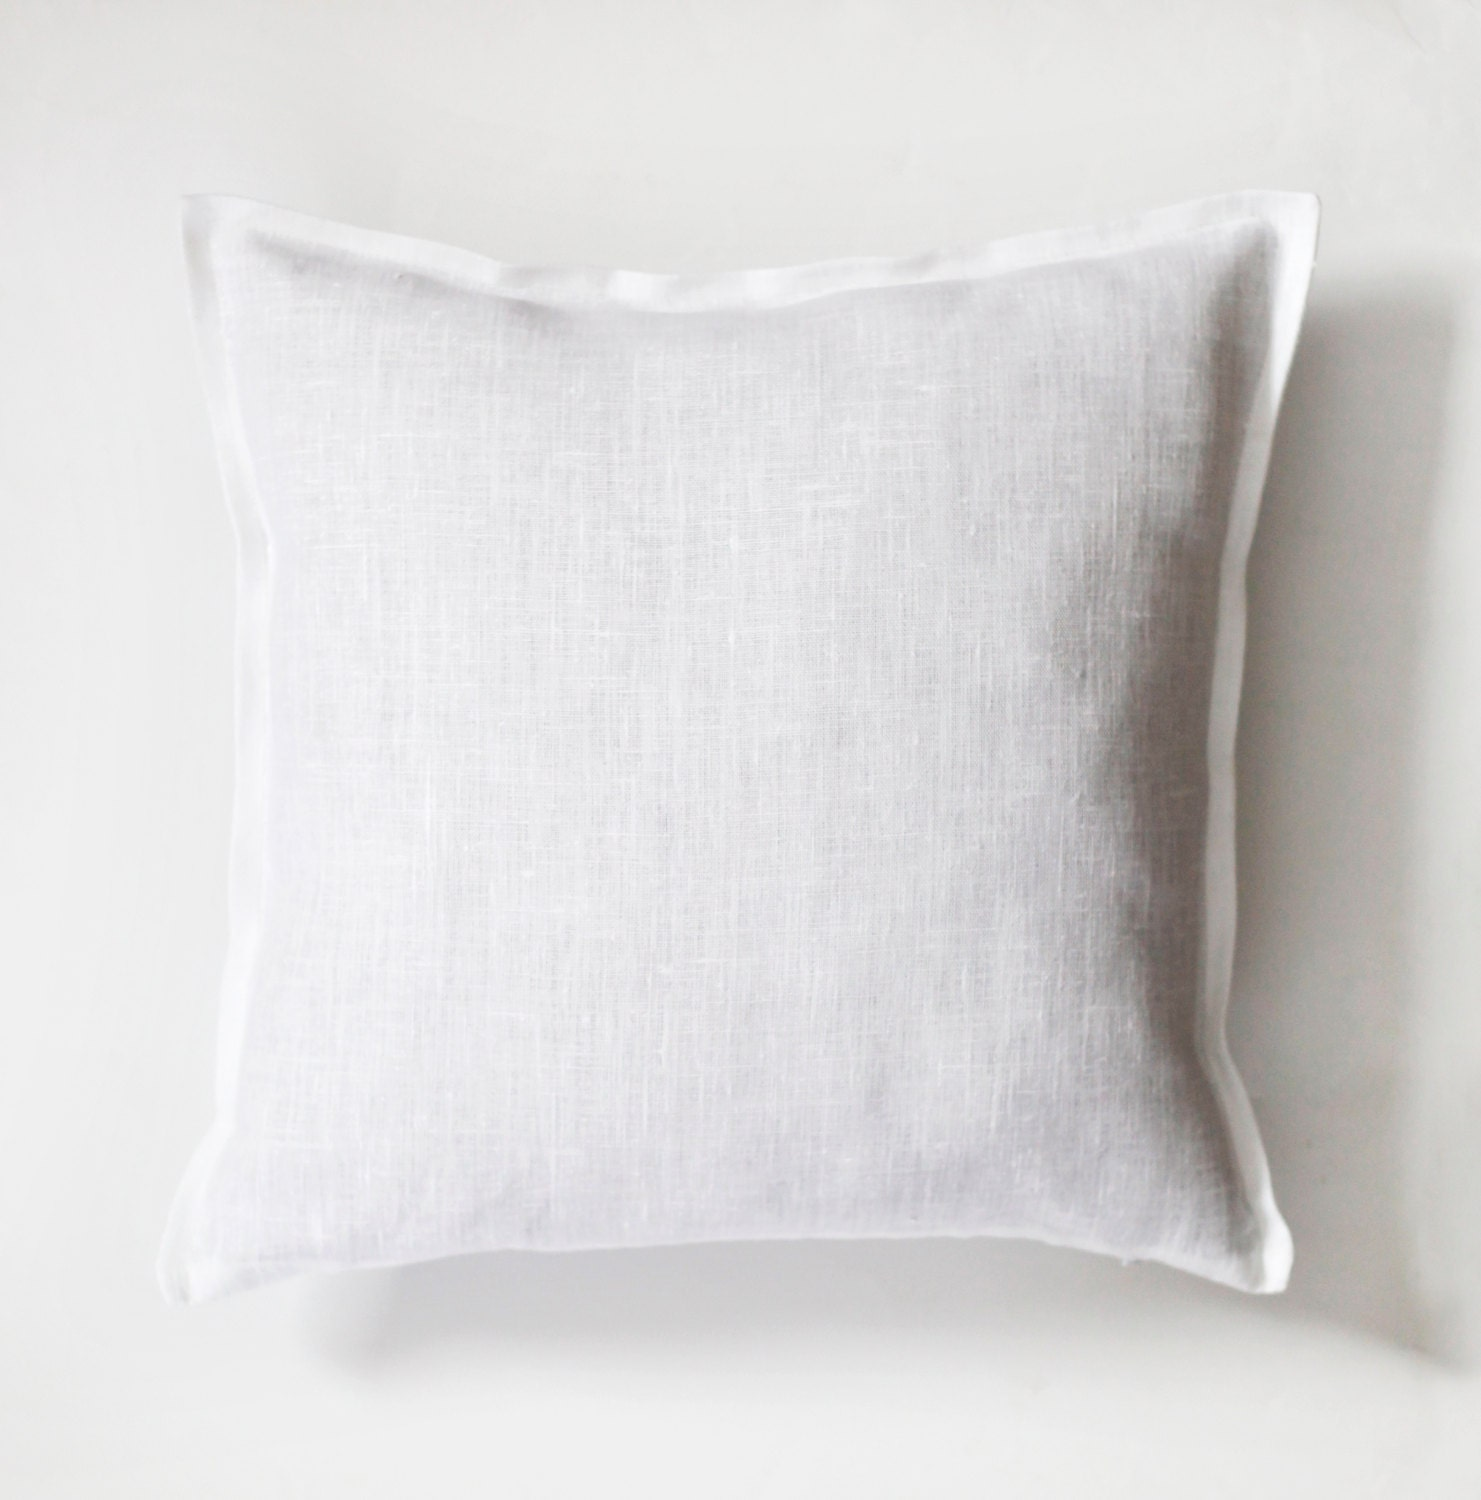 Throw Pillow White : White pillow white pillow cover white natural fabric